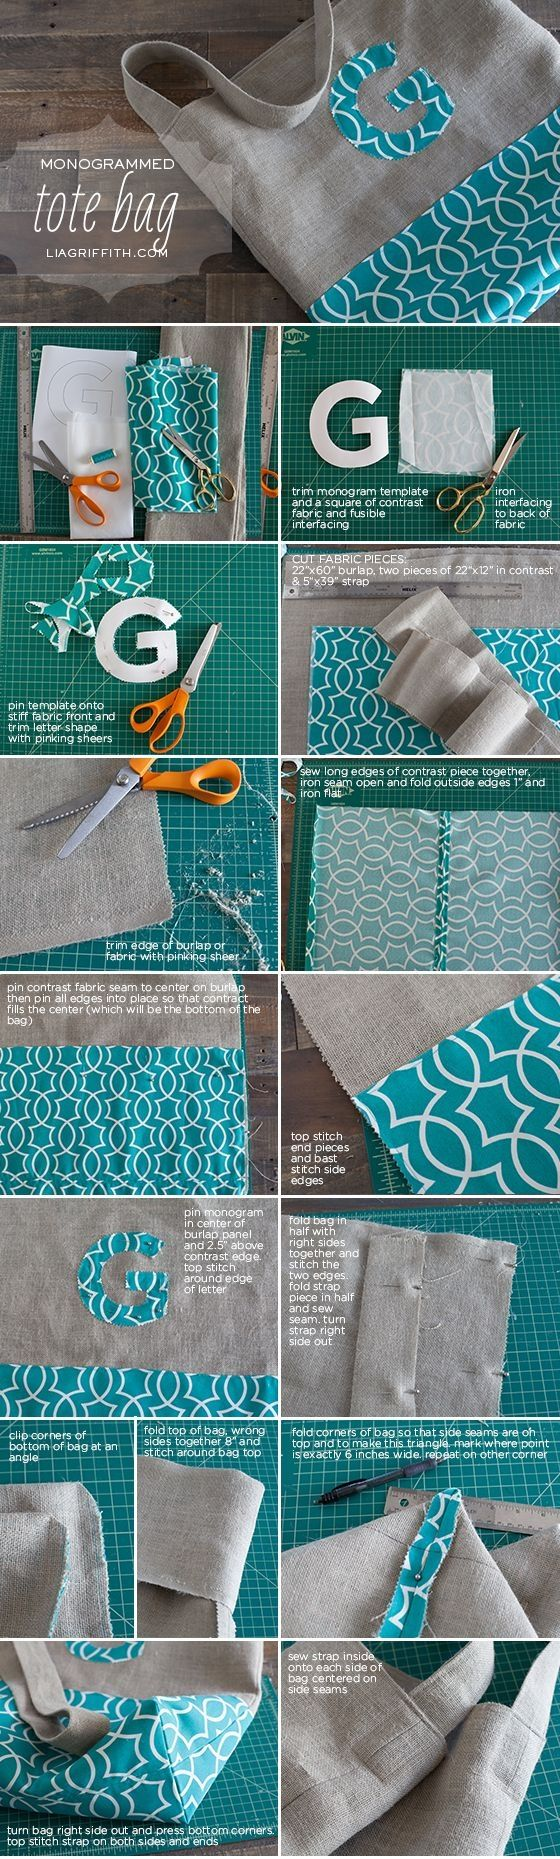 Monogram Tote Bag Tutorial from @liag | DIY Tote Bag by lucia